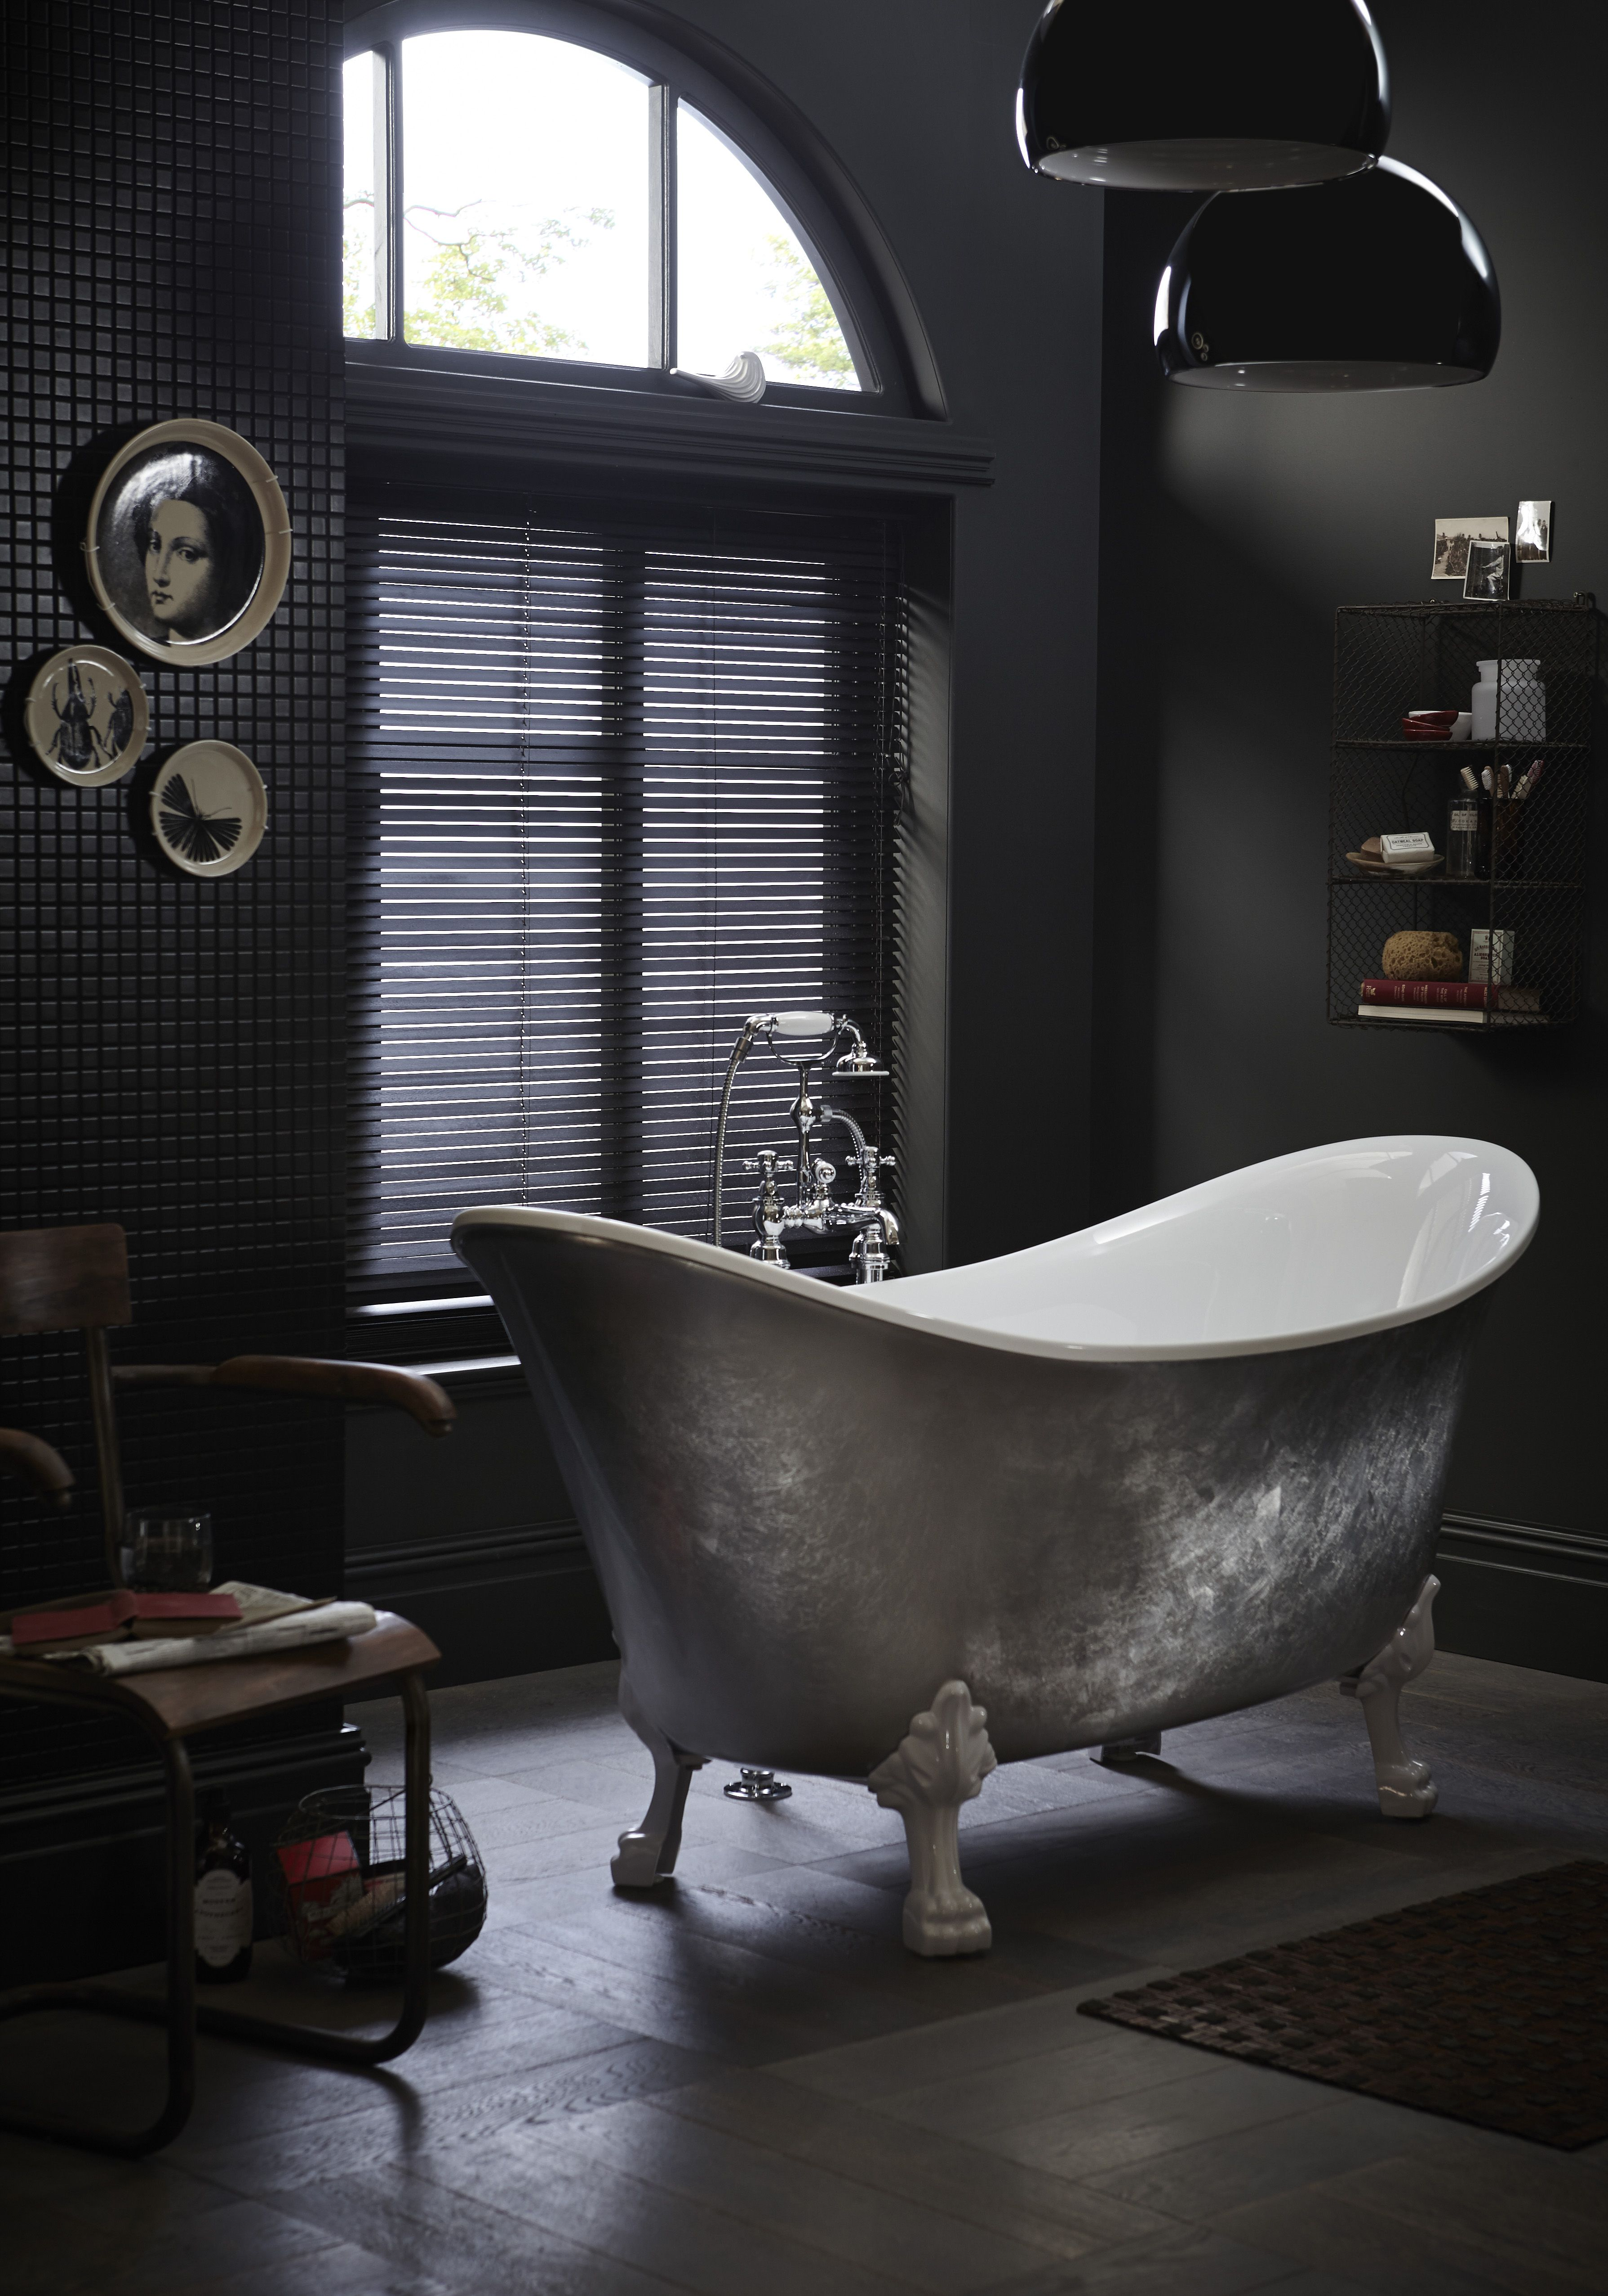 heritage bathrooms, freestanding lyddington stainless steel effect